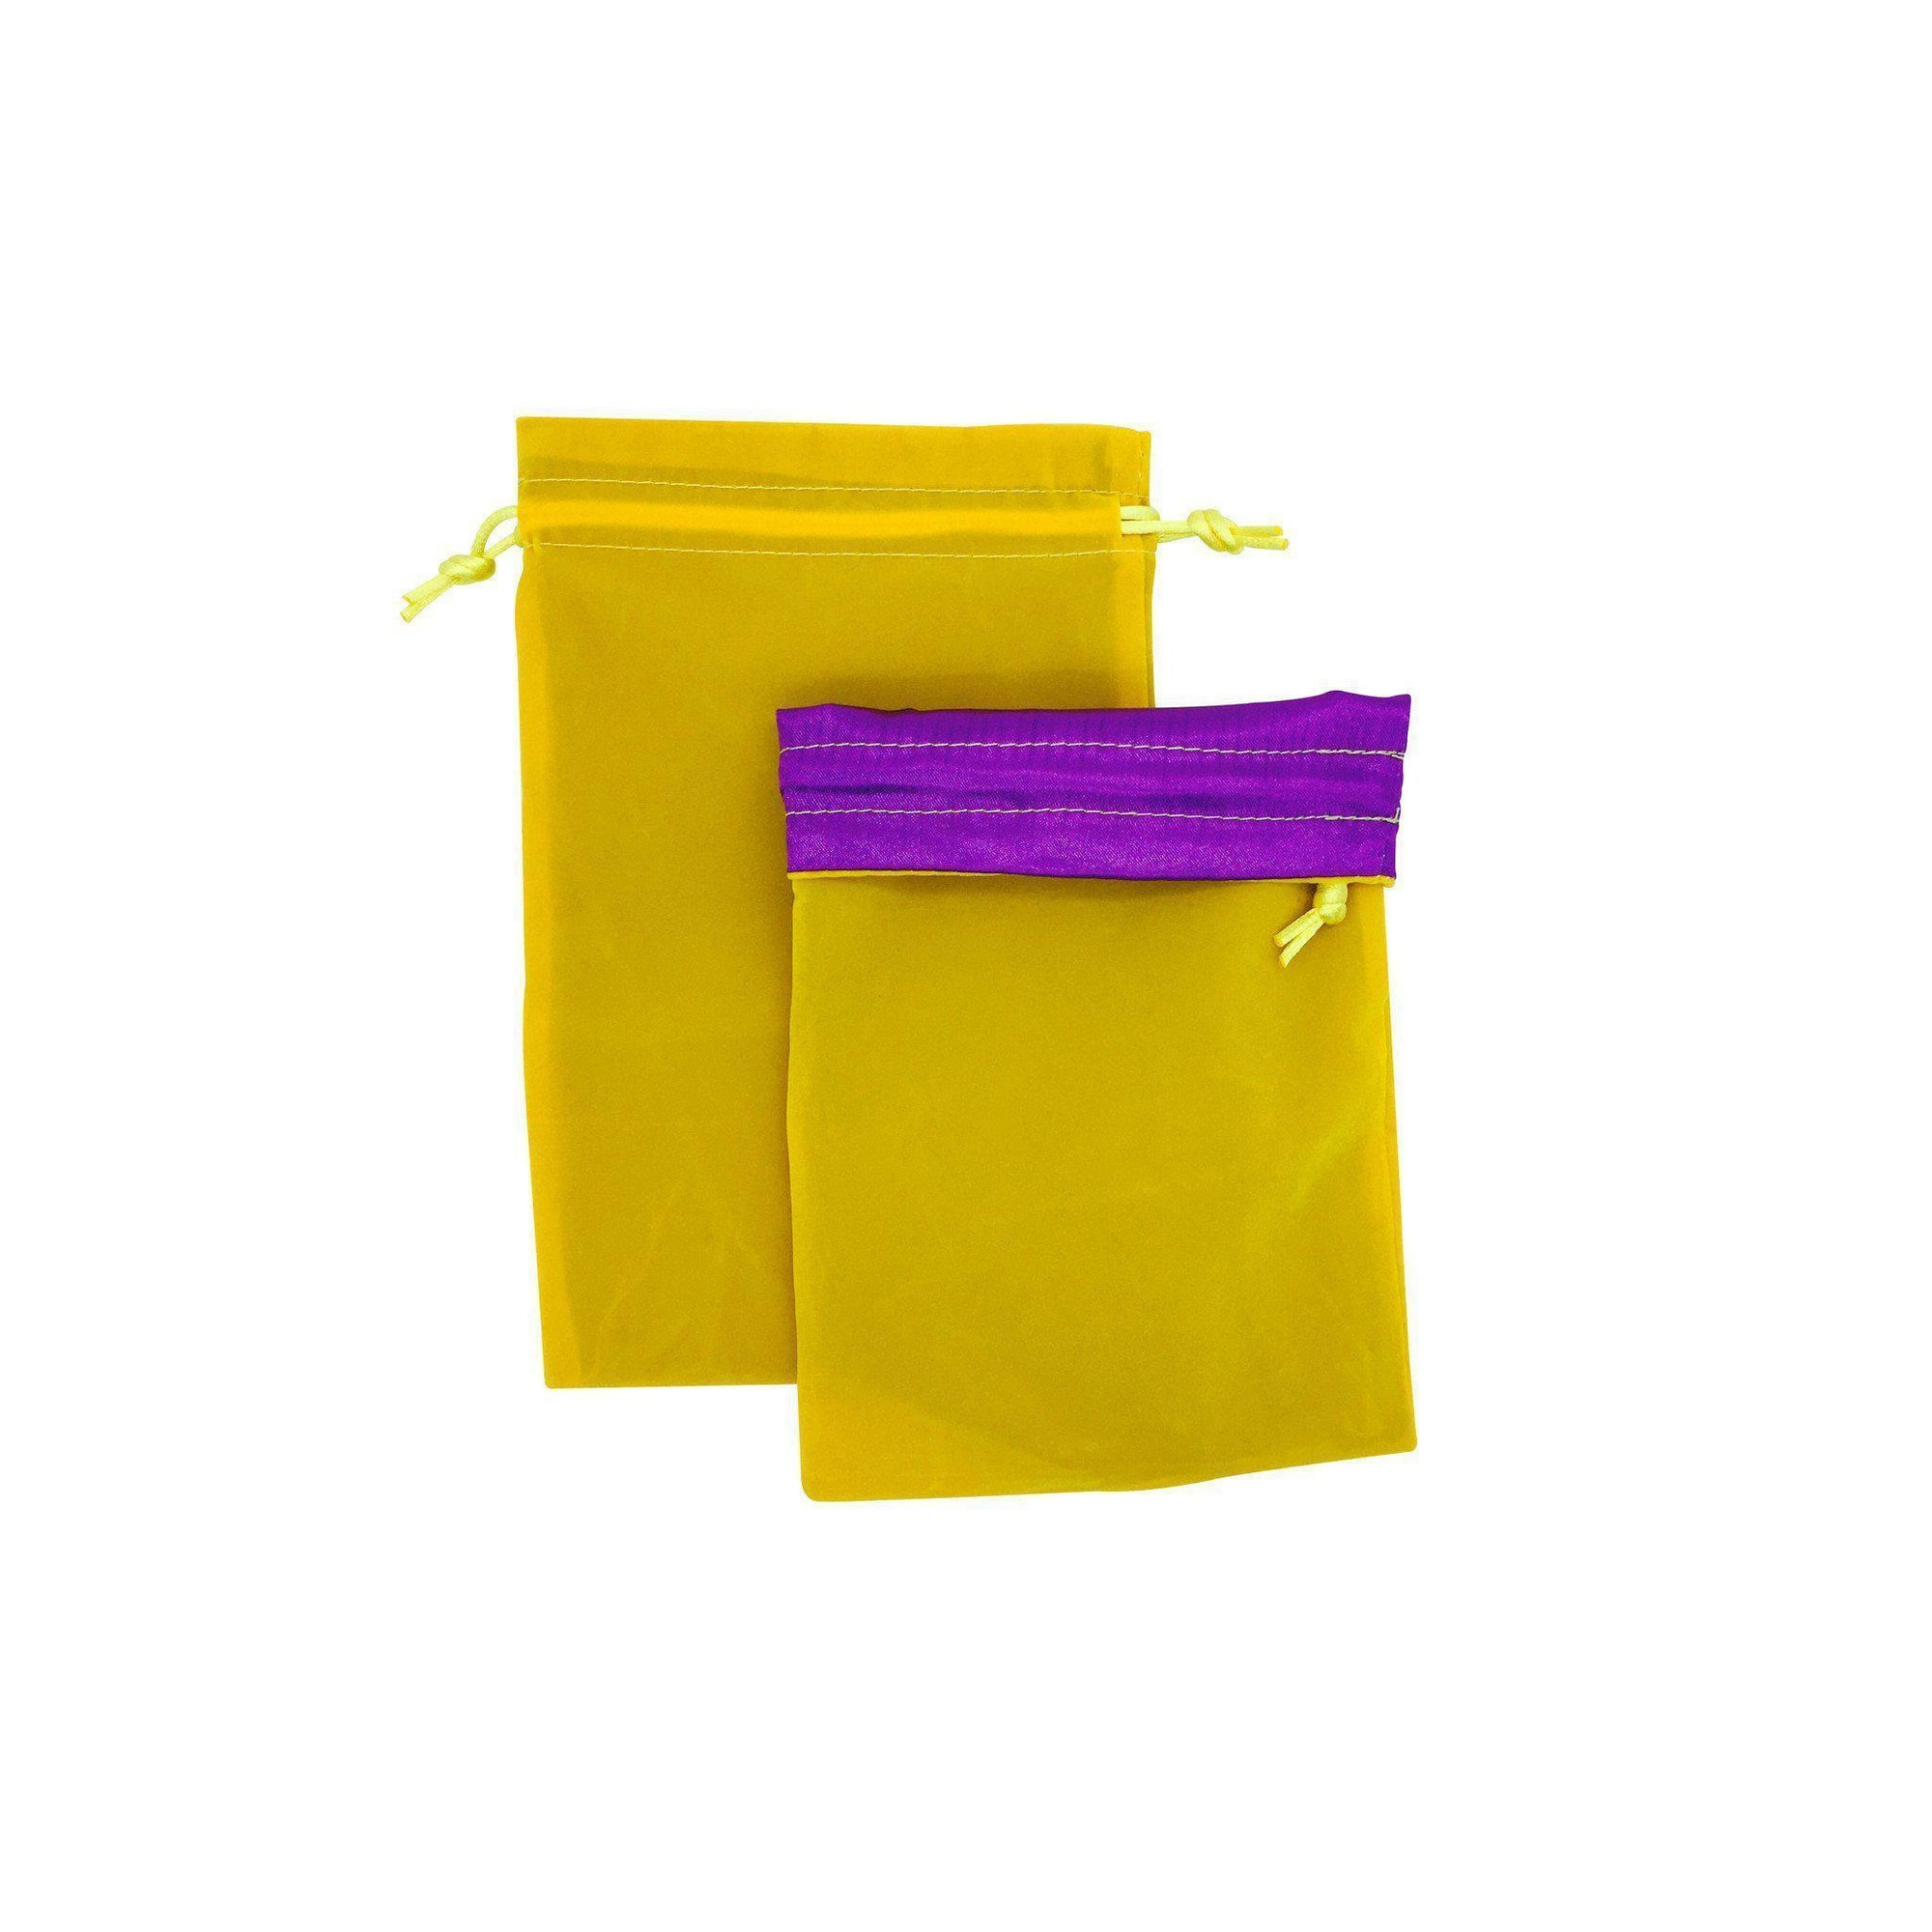 Yellow/Purple Dice Bag 5 x 7″ Velvet with Reinforced Treated Satin-Dice Bag-Norse Foundry-DND Dice-Polyhedral Dice-D20-Metal Dice-Precision Dice-Luxury Dice-Dungeons and Dragons-D&D-